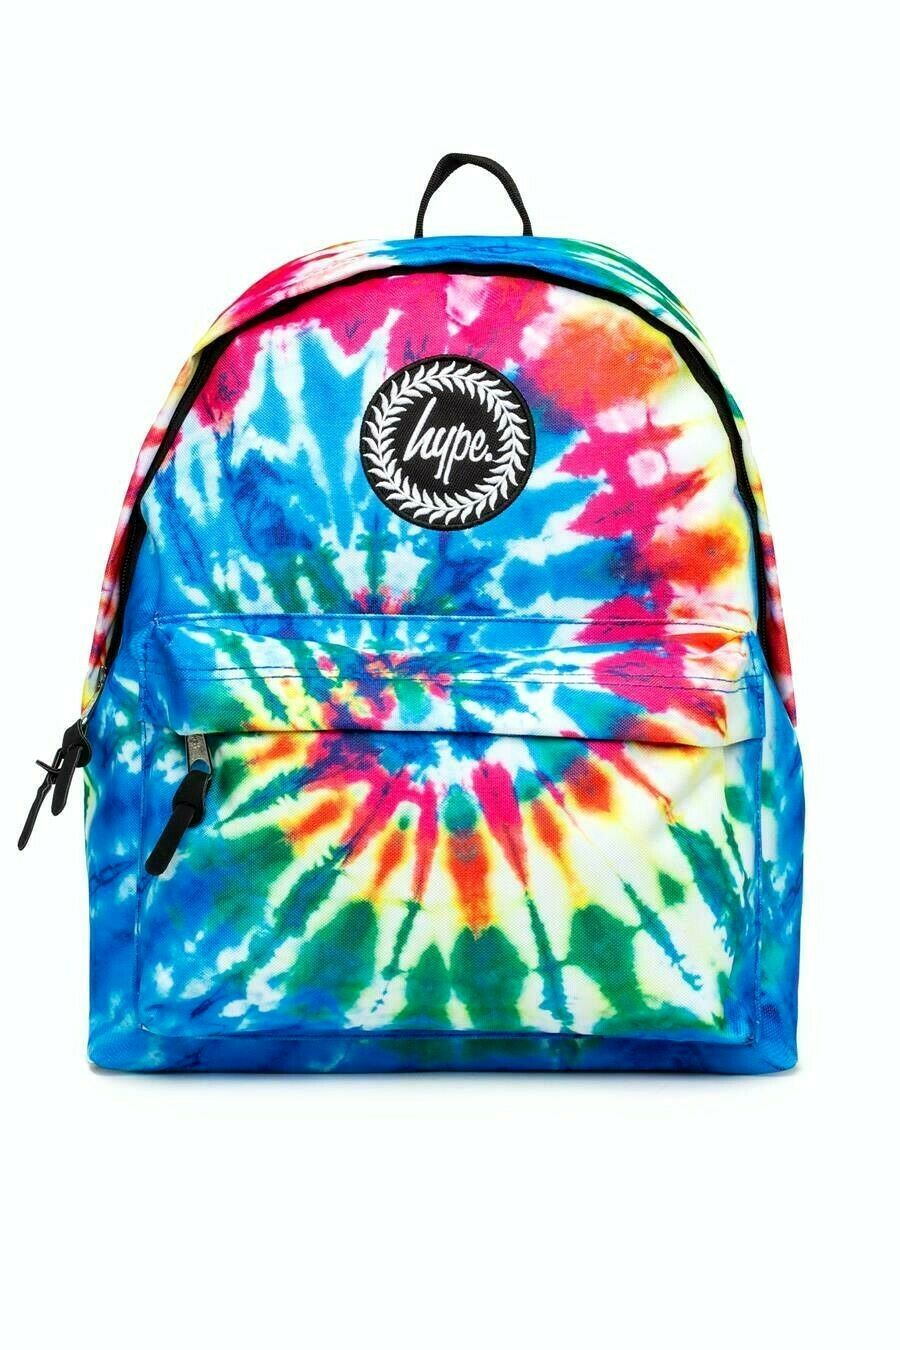 HYPE TIE DYE BACKPACK RUCKSACK BAG - MULTI